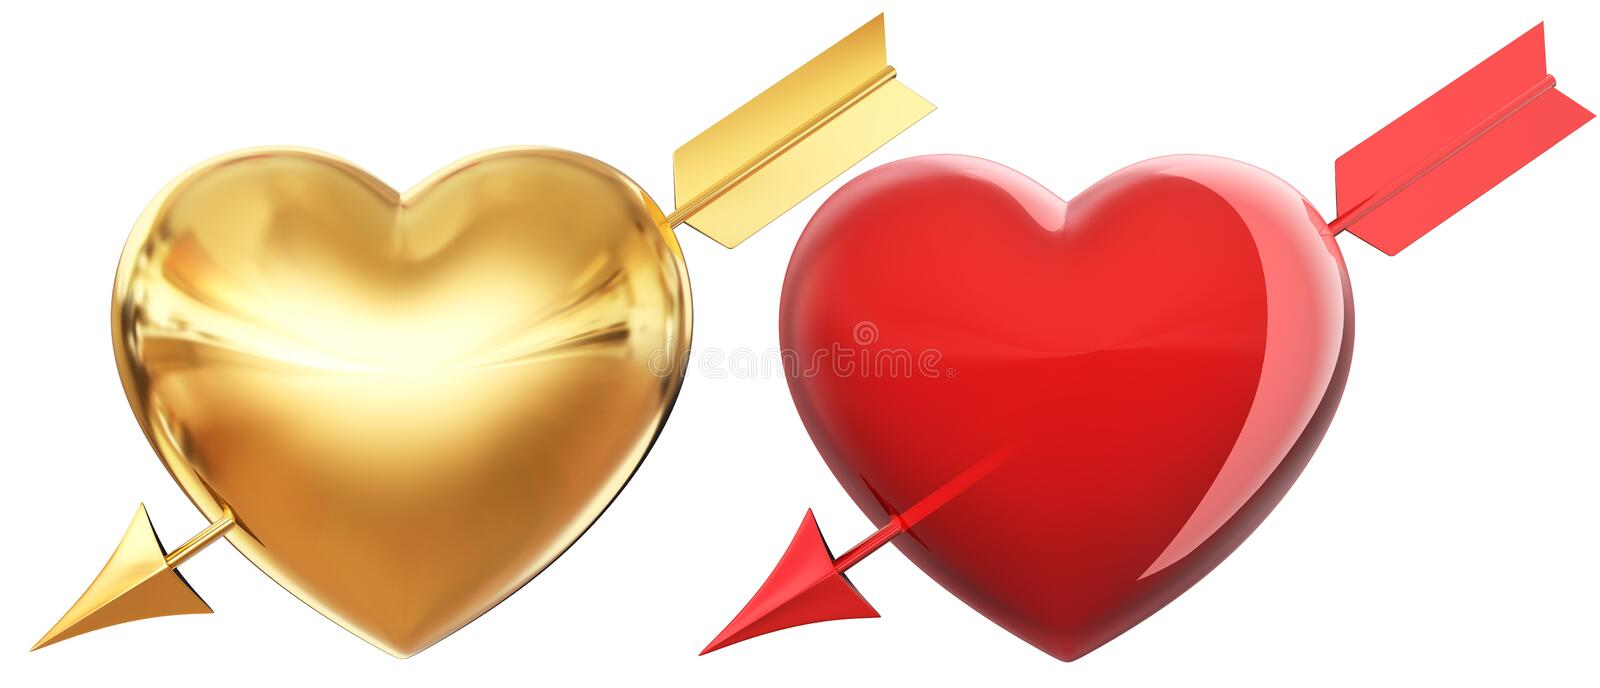 Golden and red hearts. Pierced by arrow royalty free illustration